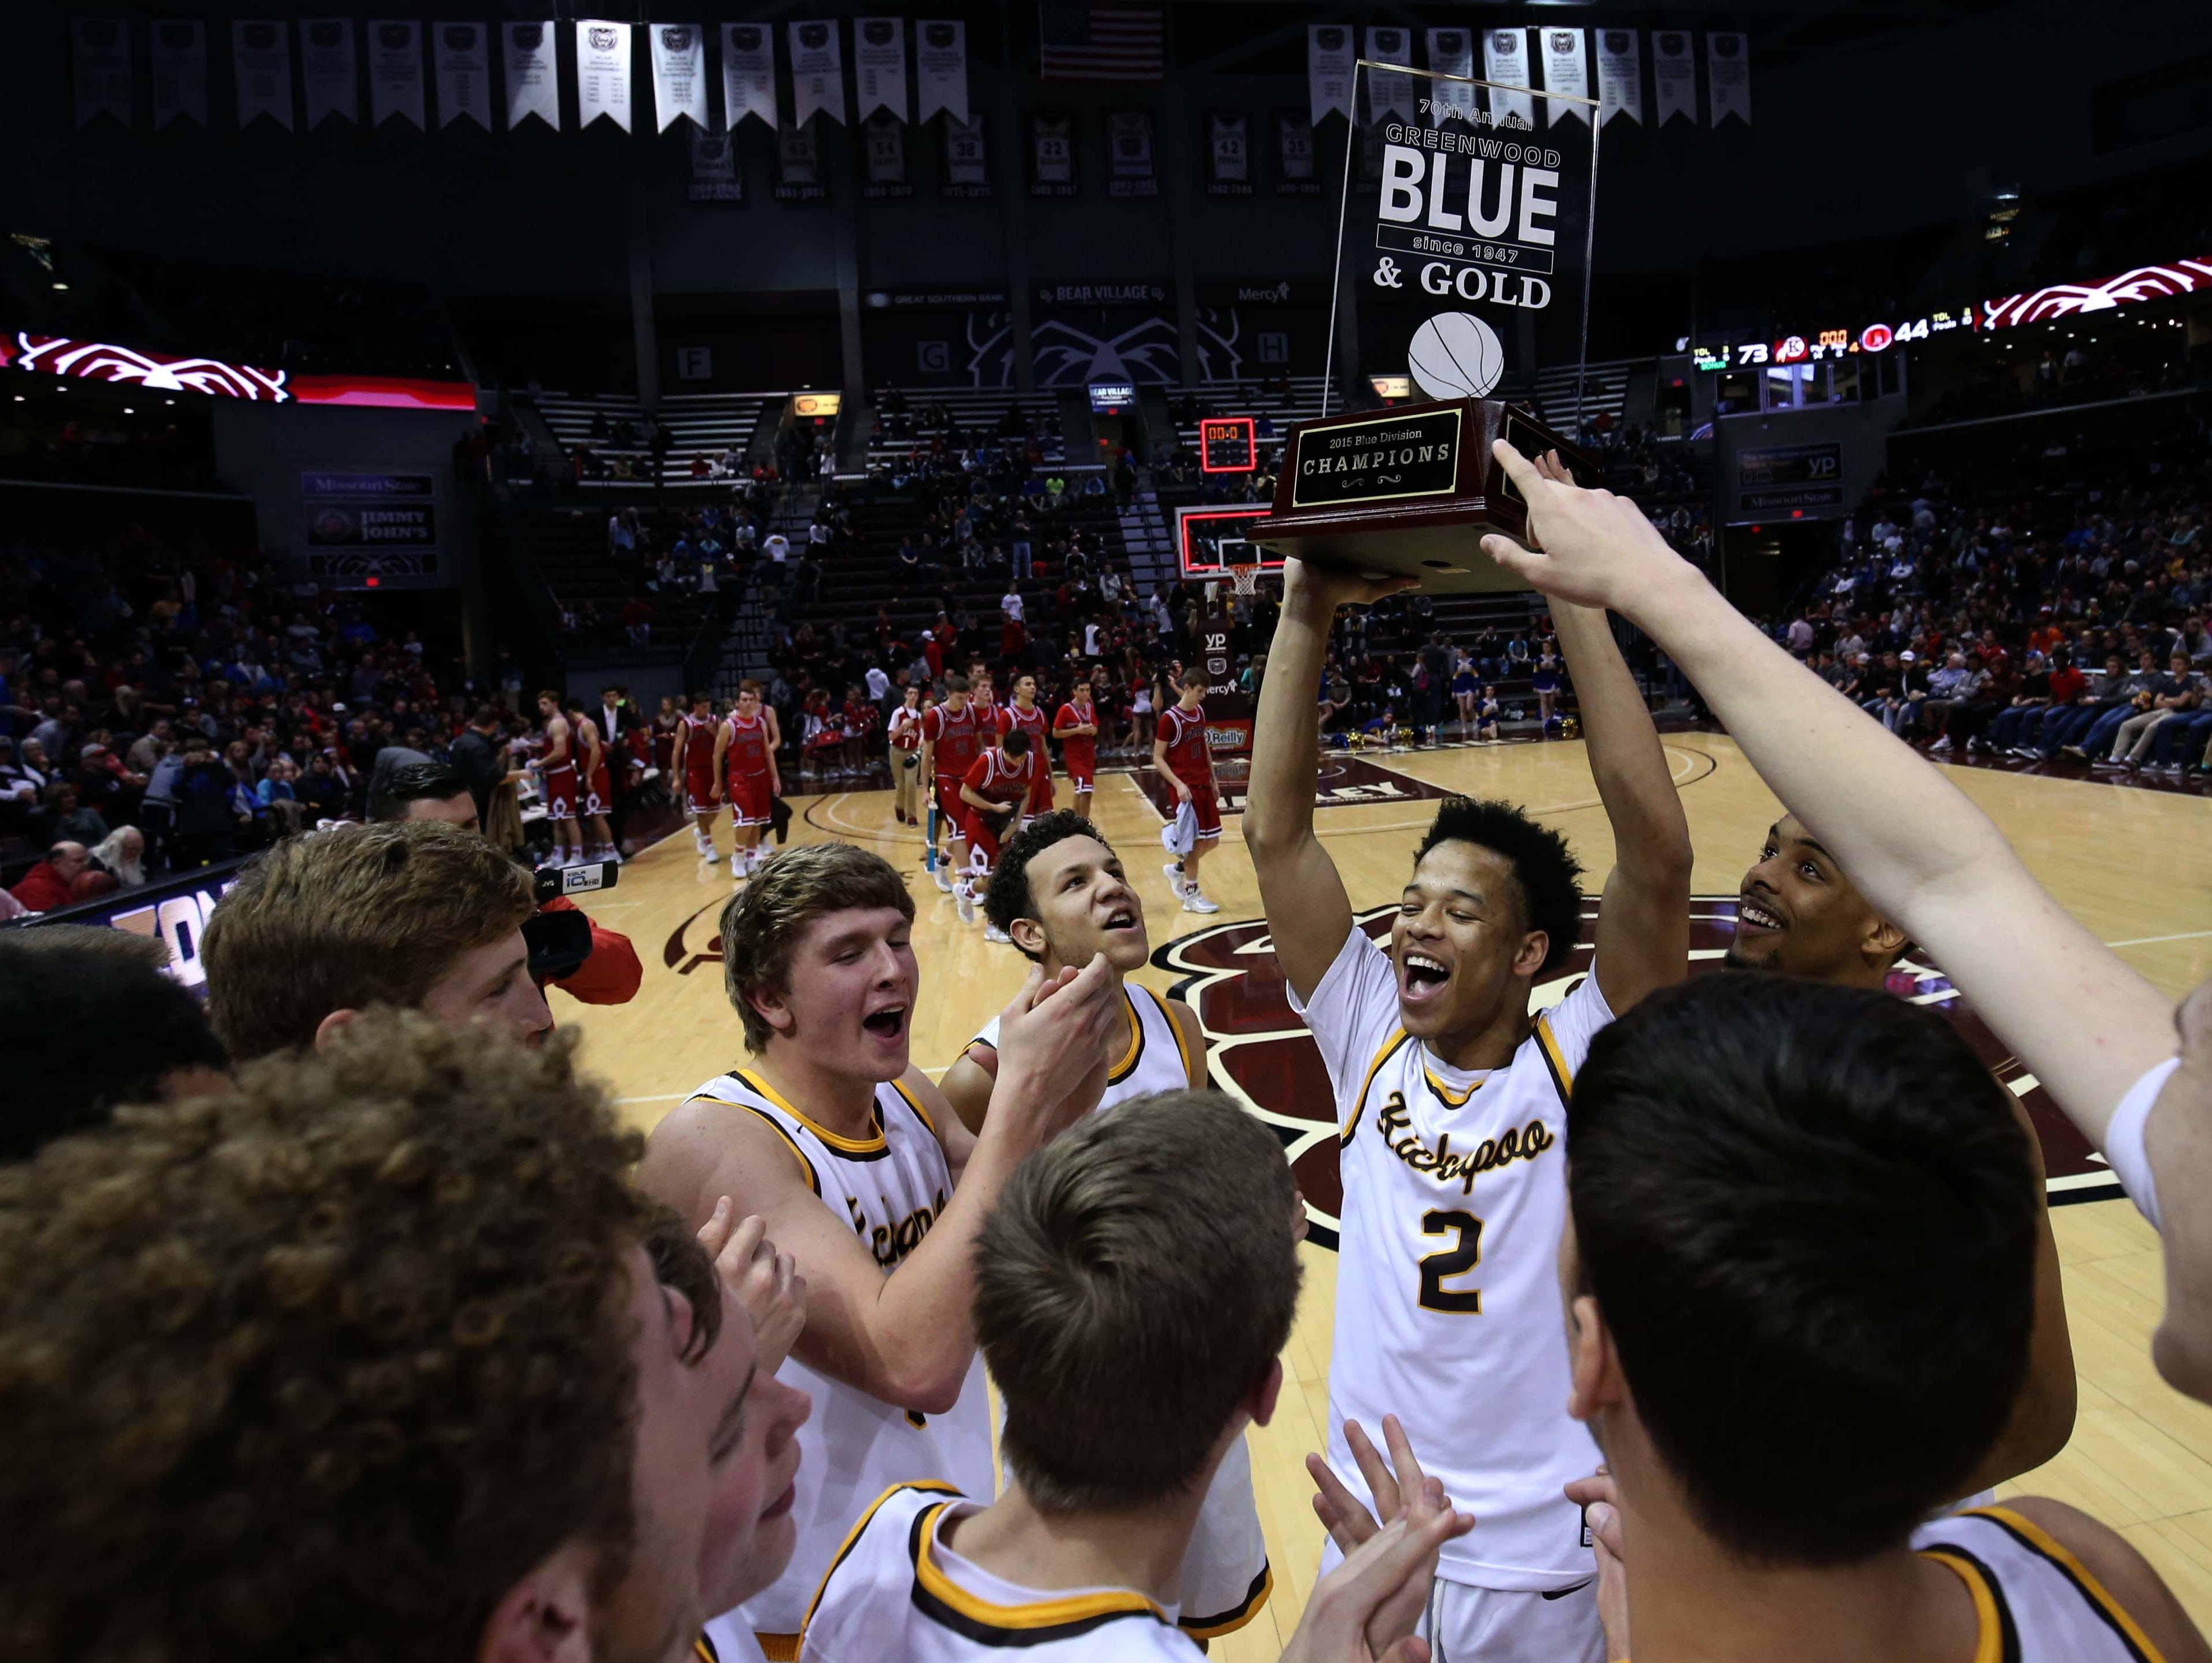 Kickapoo's Derrick Roberson hoists the championship trophy after beating Ozark in the Blue Division Final at JQH Arena on December 30, 2015.